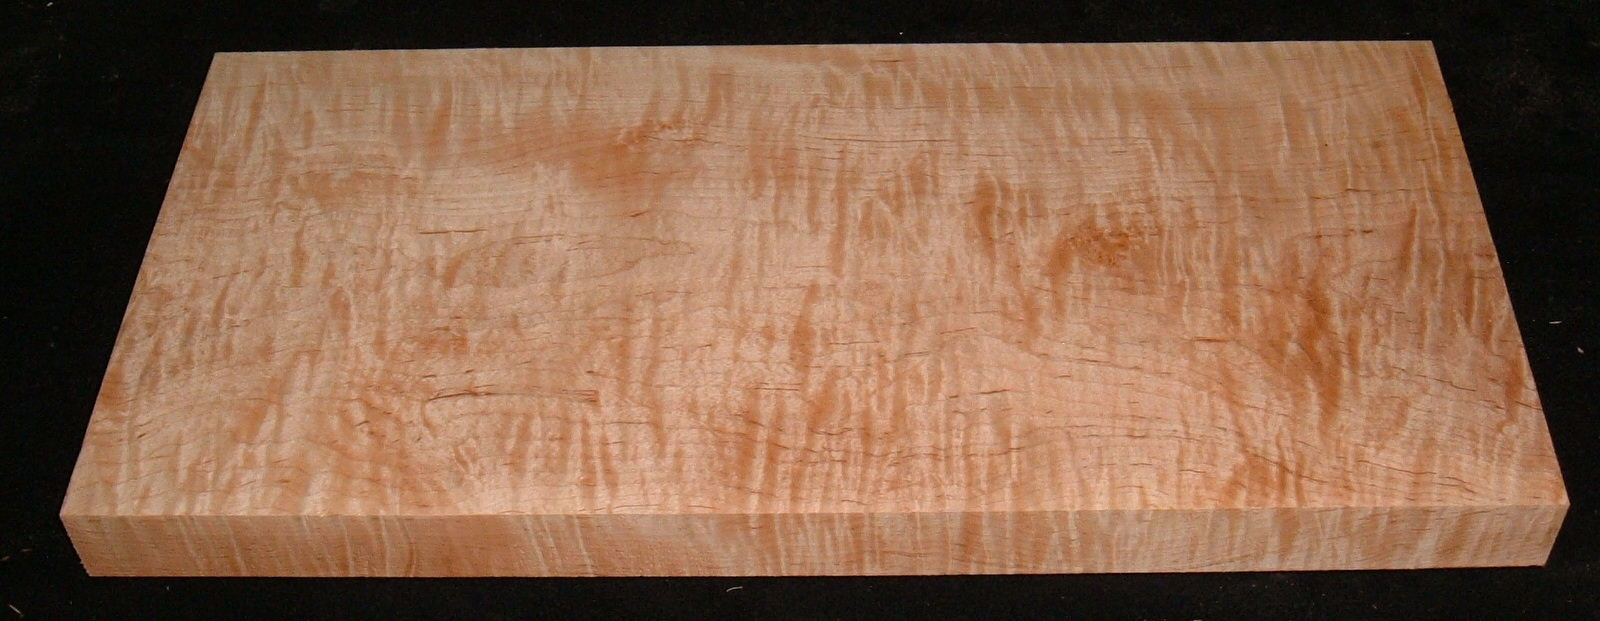 MS-3141, 1-1/2x10-1/4x21, Curly Tiger Maple